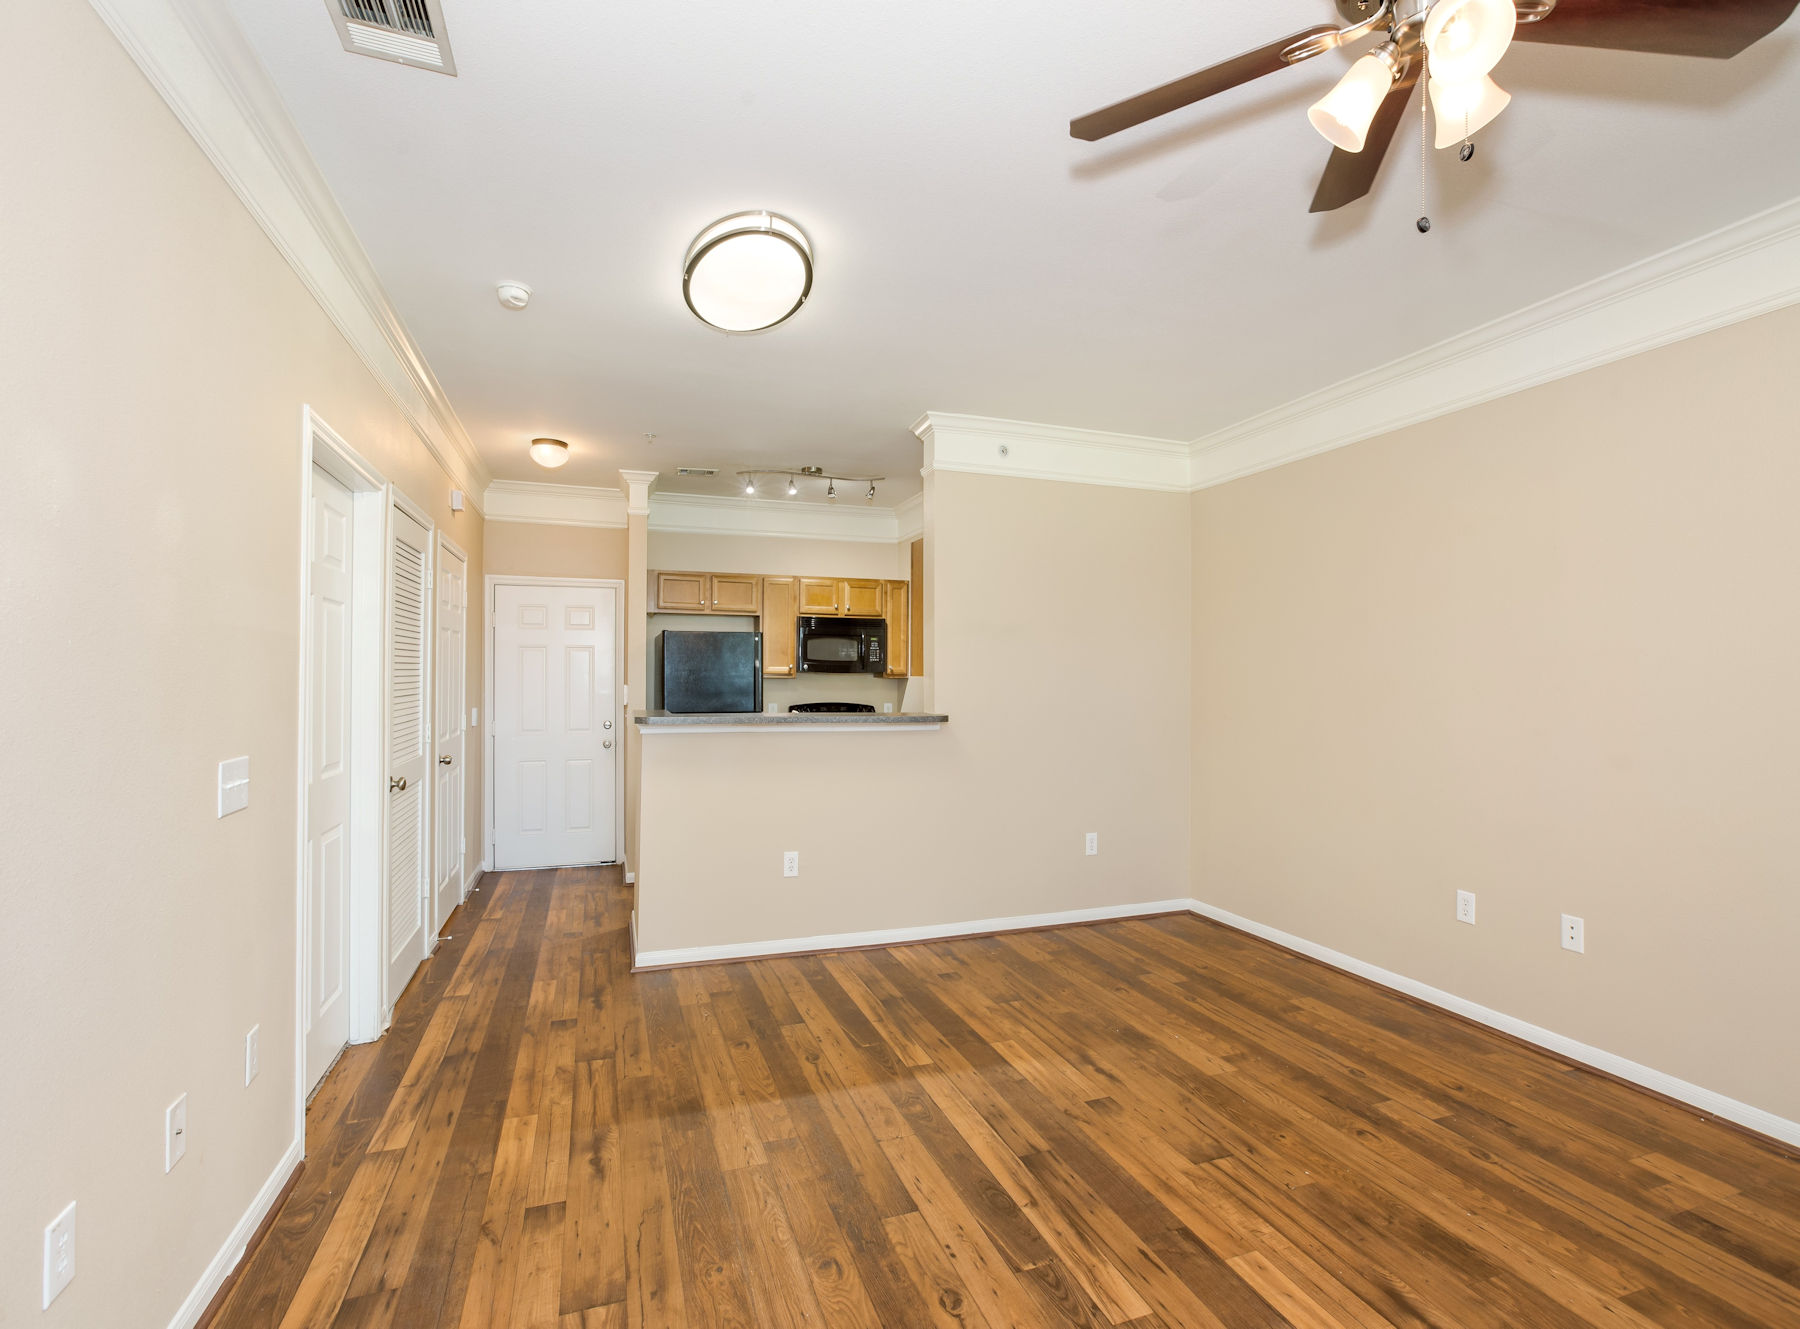 Model living room with wood floor, ceiling fan, and modern paint.